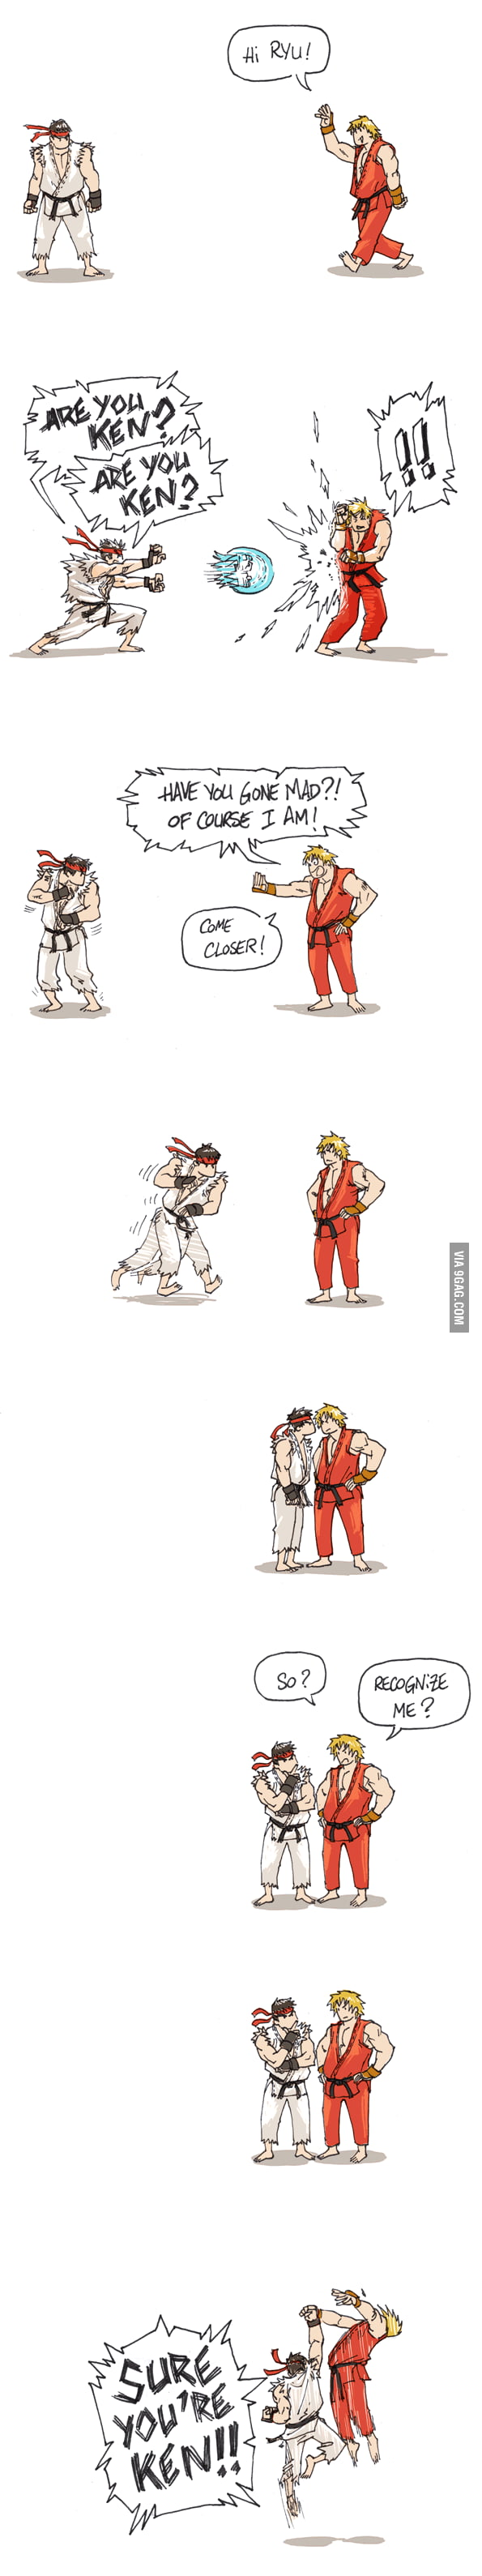 Just Street Fighter...